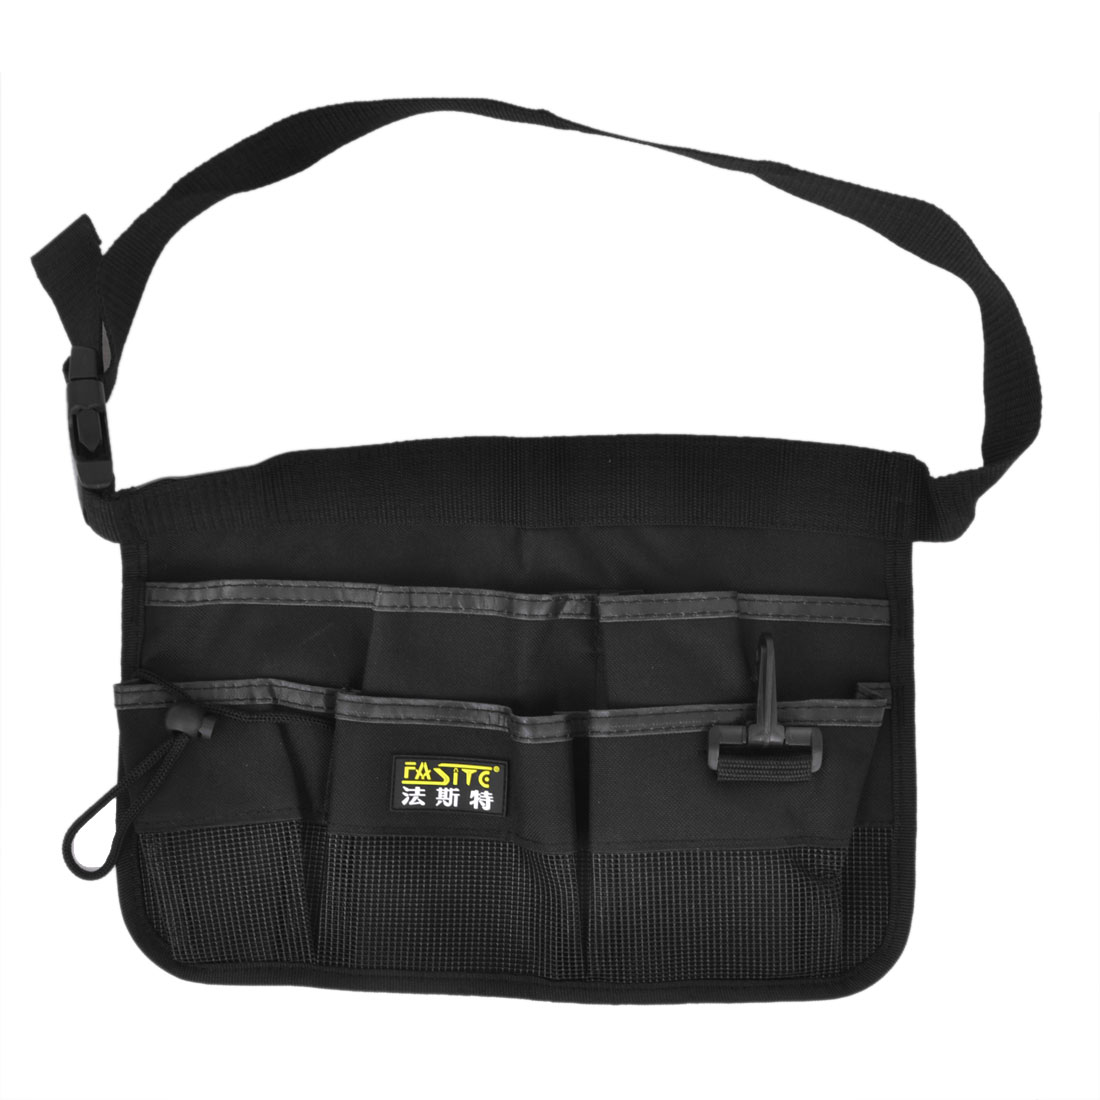 Release Buckle Black Nylon Oxford Gardens Tool Holder Waist Bag